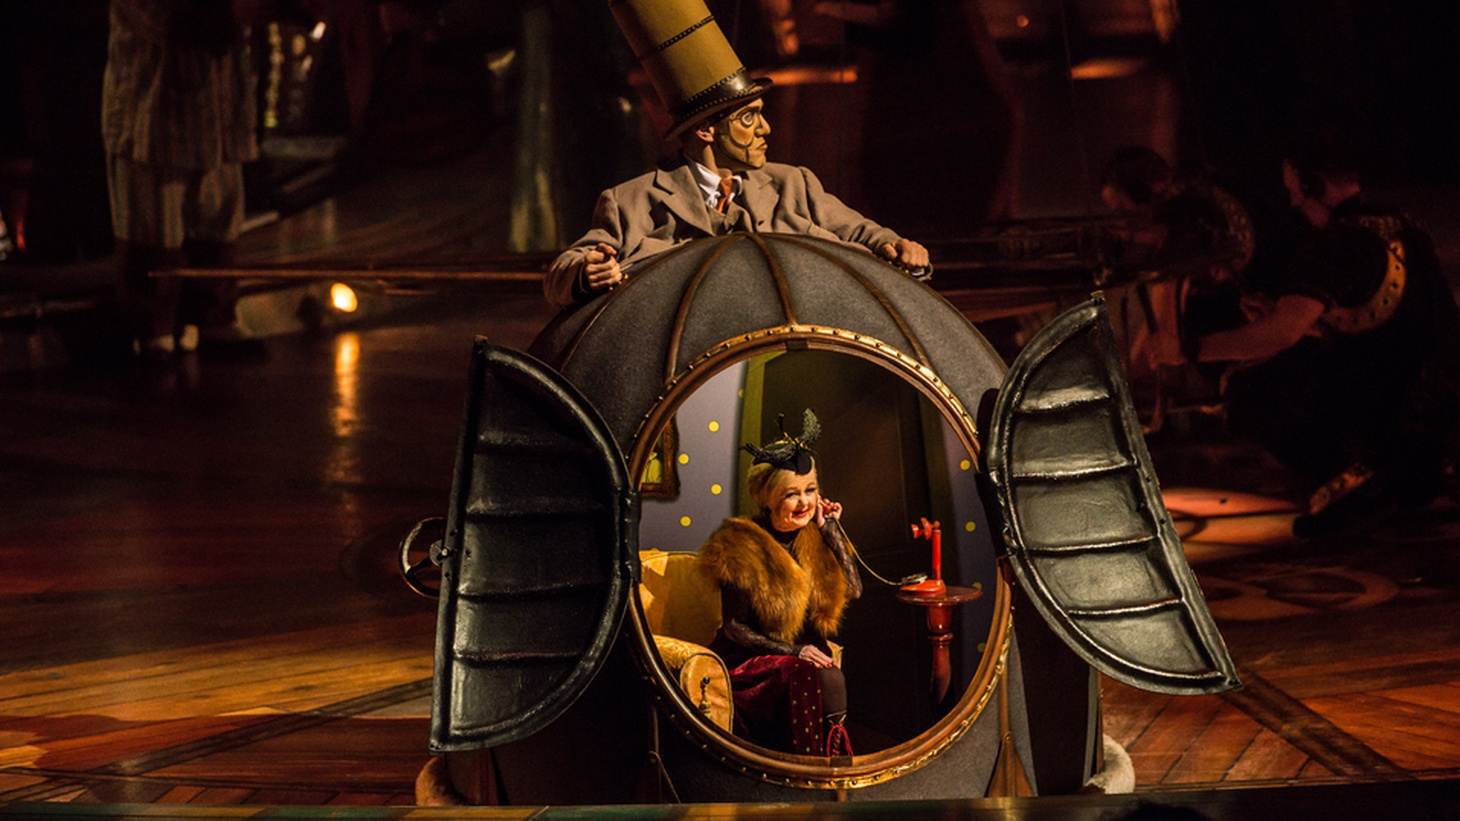 Cirque du Soleil's latest show, Kurios, repeats their favorite recipe and manages to recapture the magic. It's the best Cirque show to make it through LA in years.